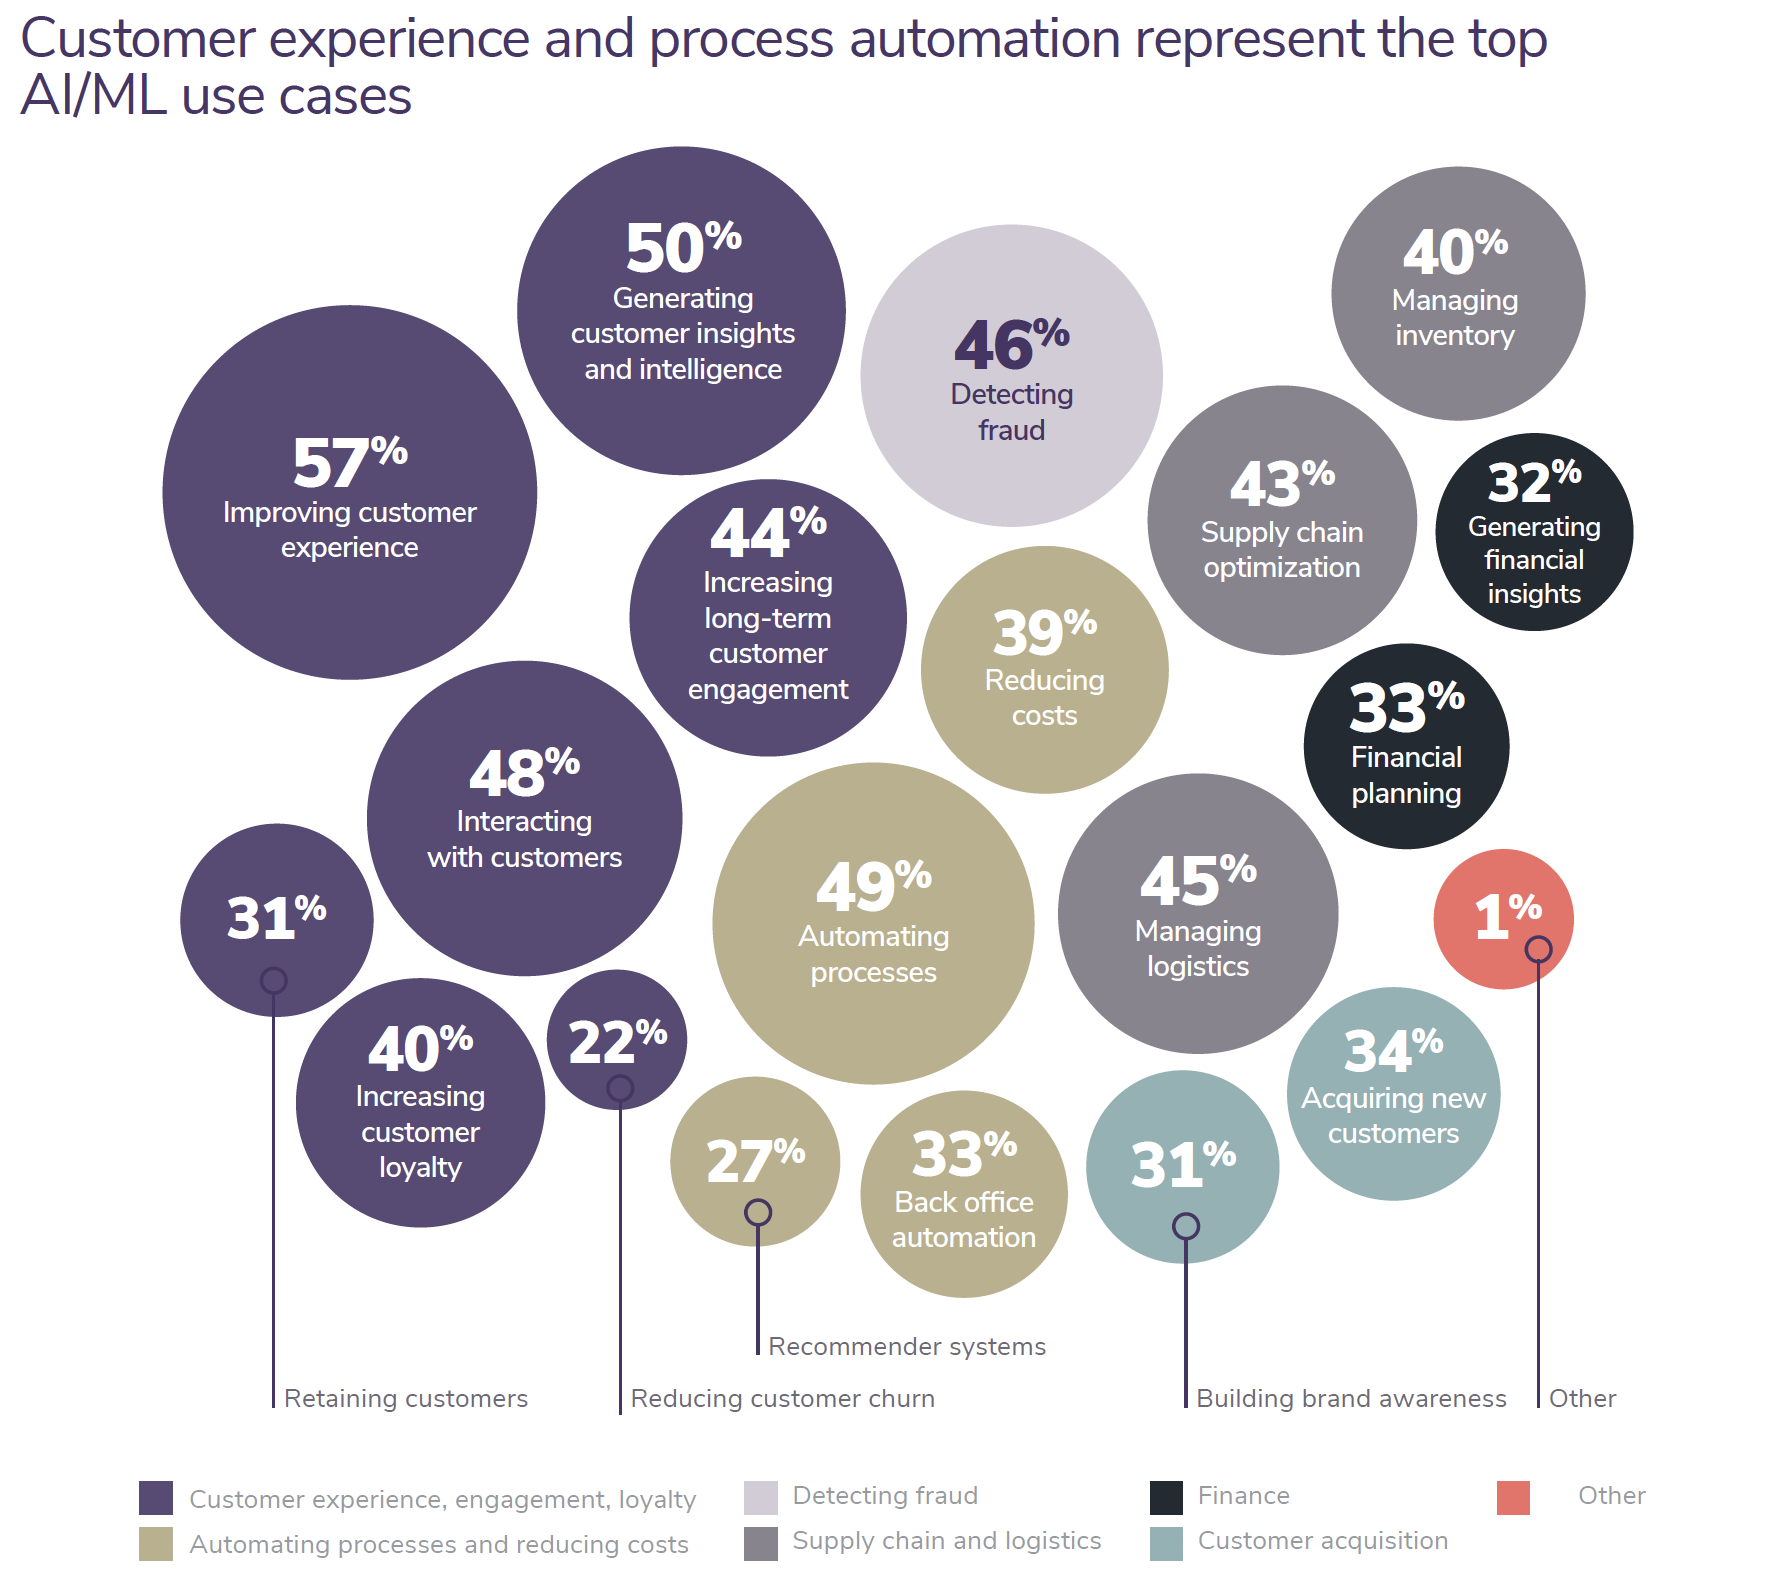 Customer experience and process automation represent the top AI/ML use cases